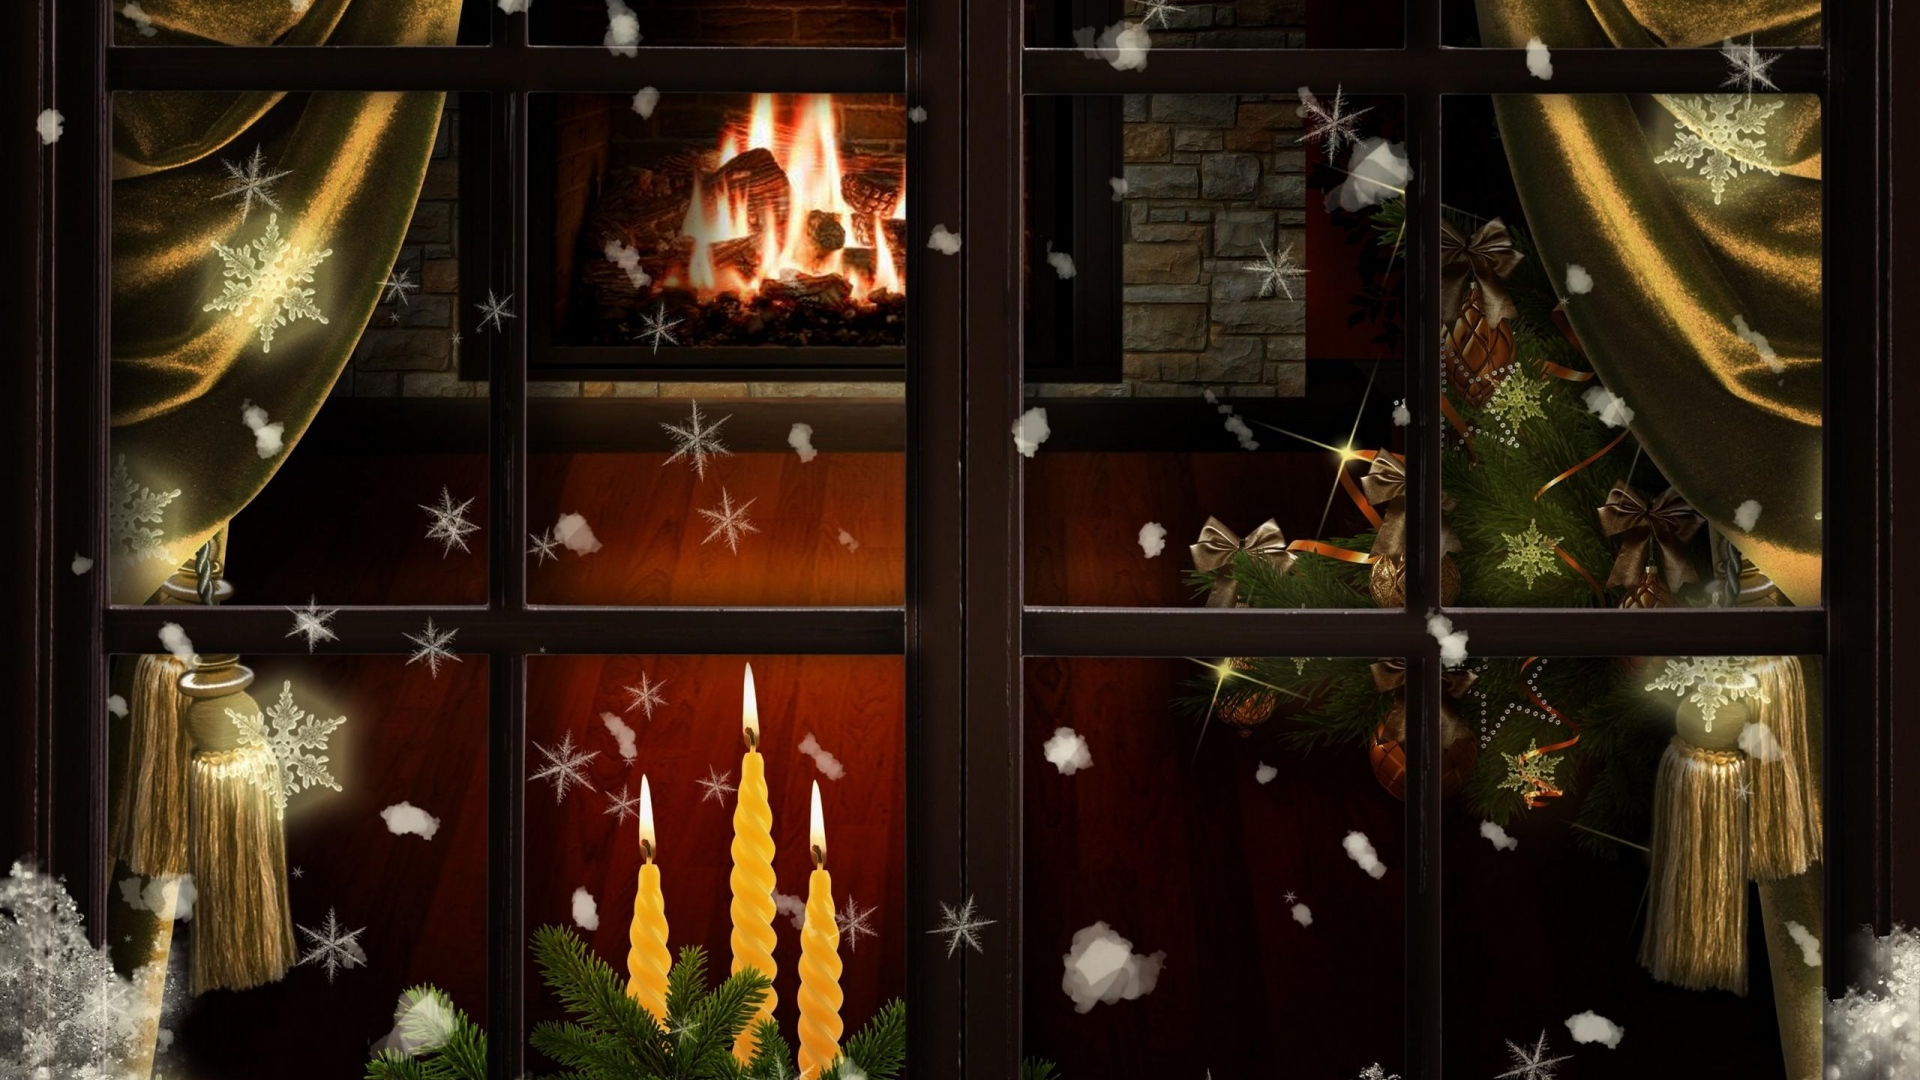 download wallpaper 1920x1080 window  fireplace  candles